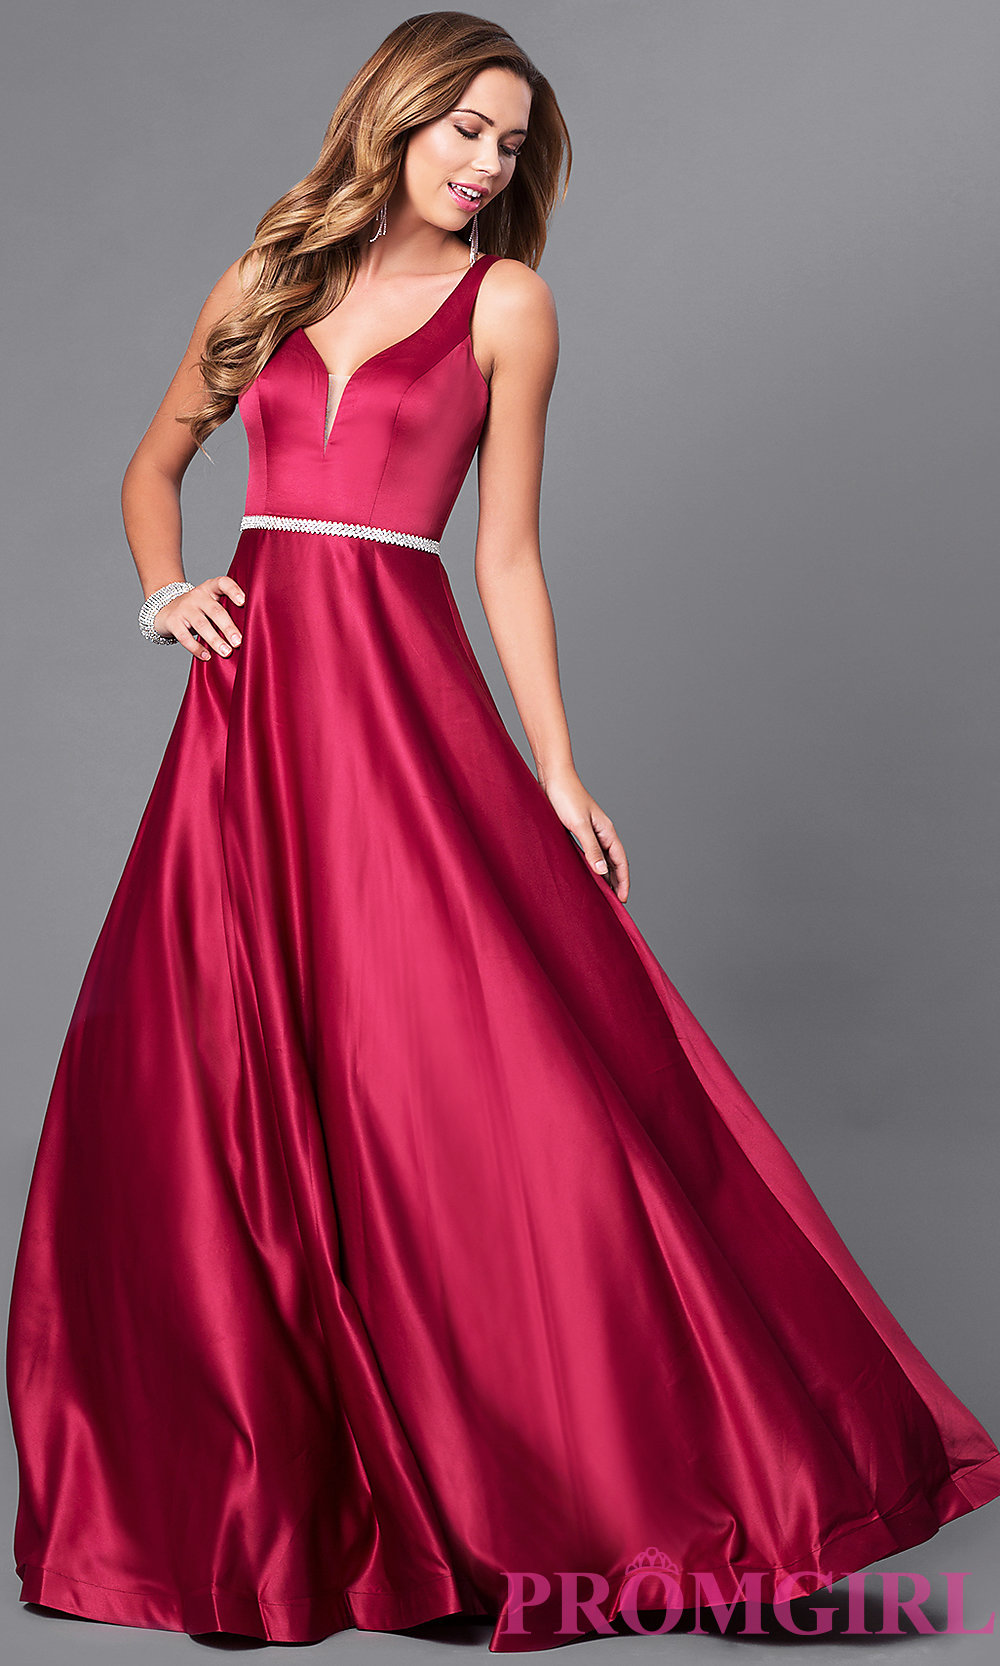 prom gowns hover to zoom zrnxonq